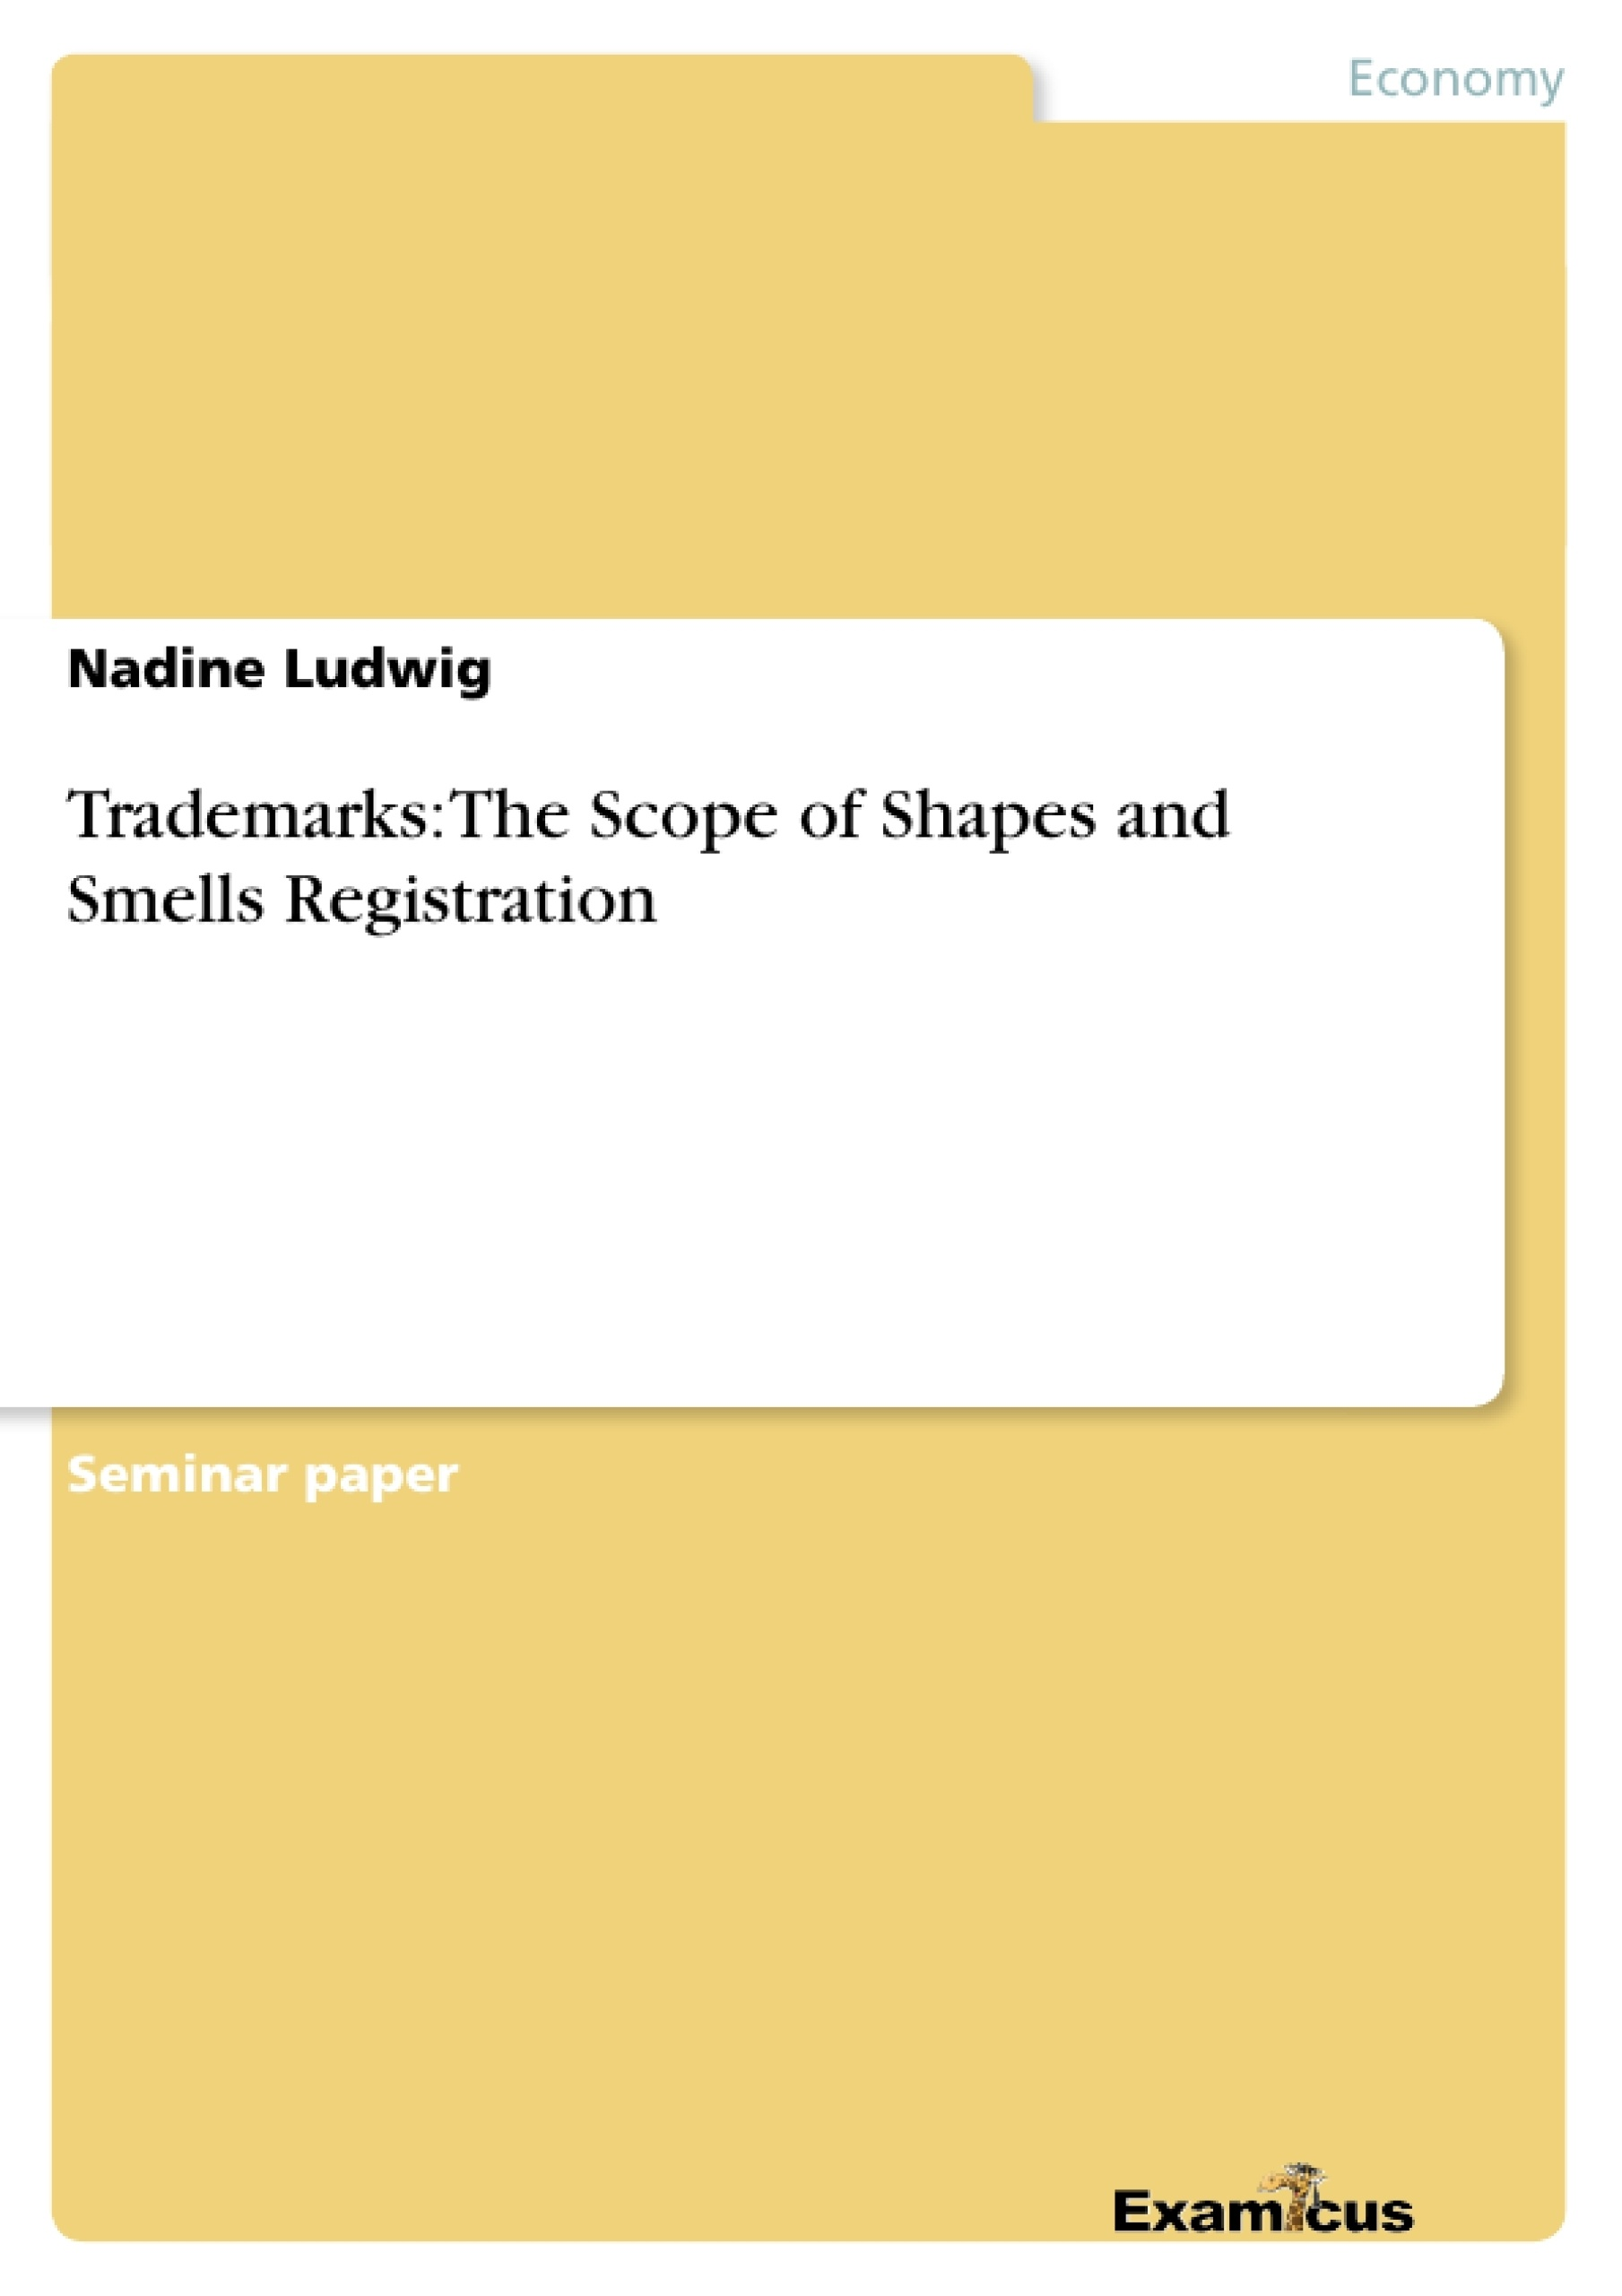 Title: Trademarks: The Scope of Shapes and Smells Registration